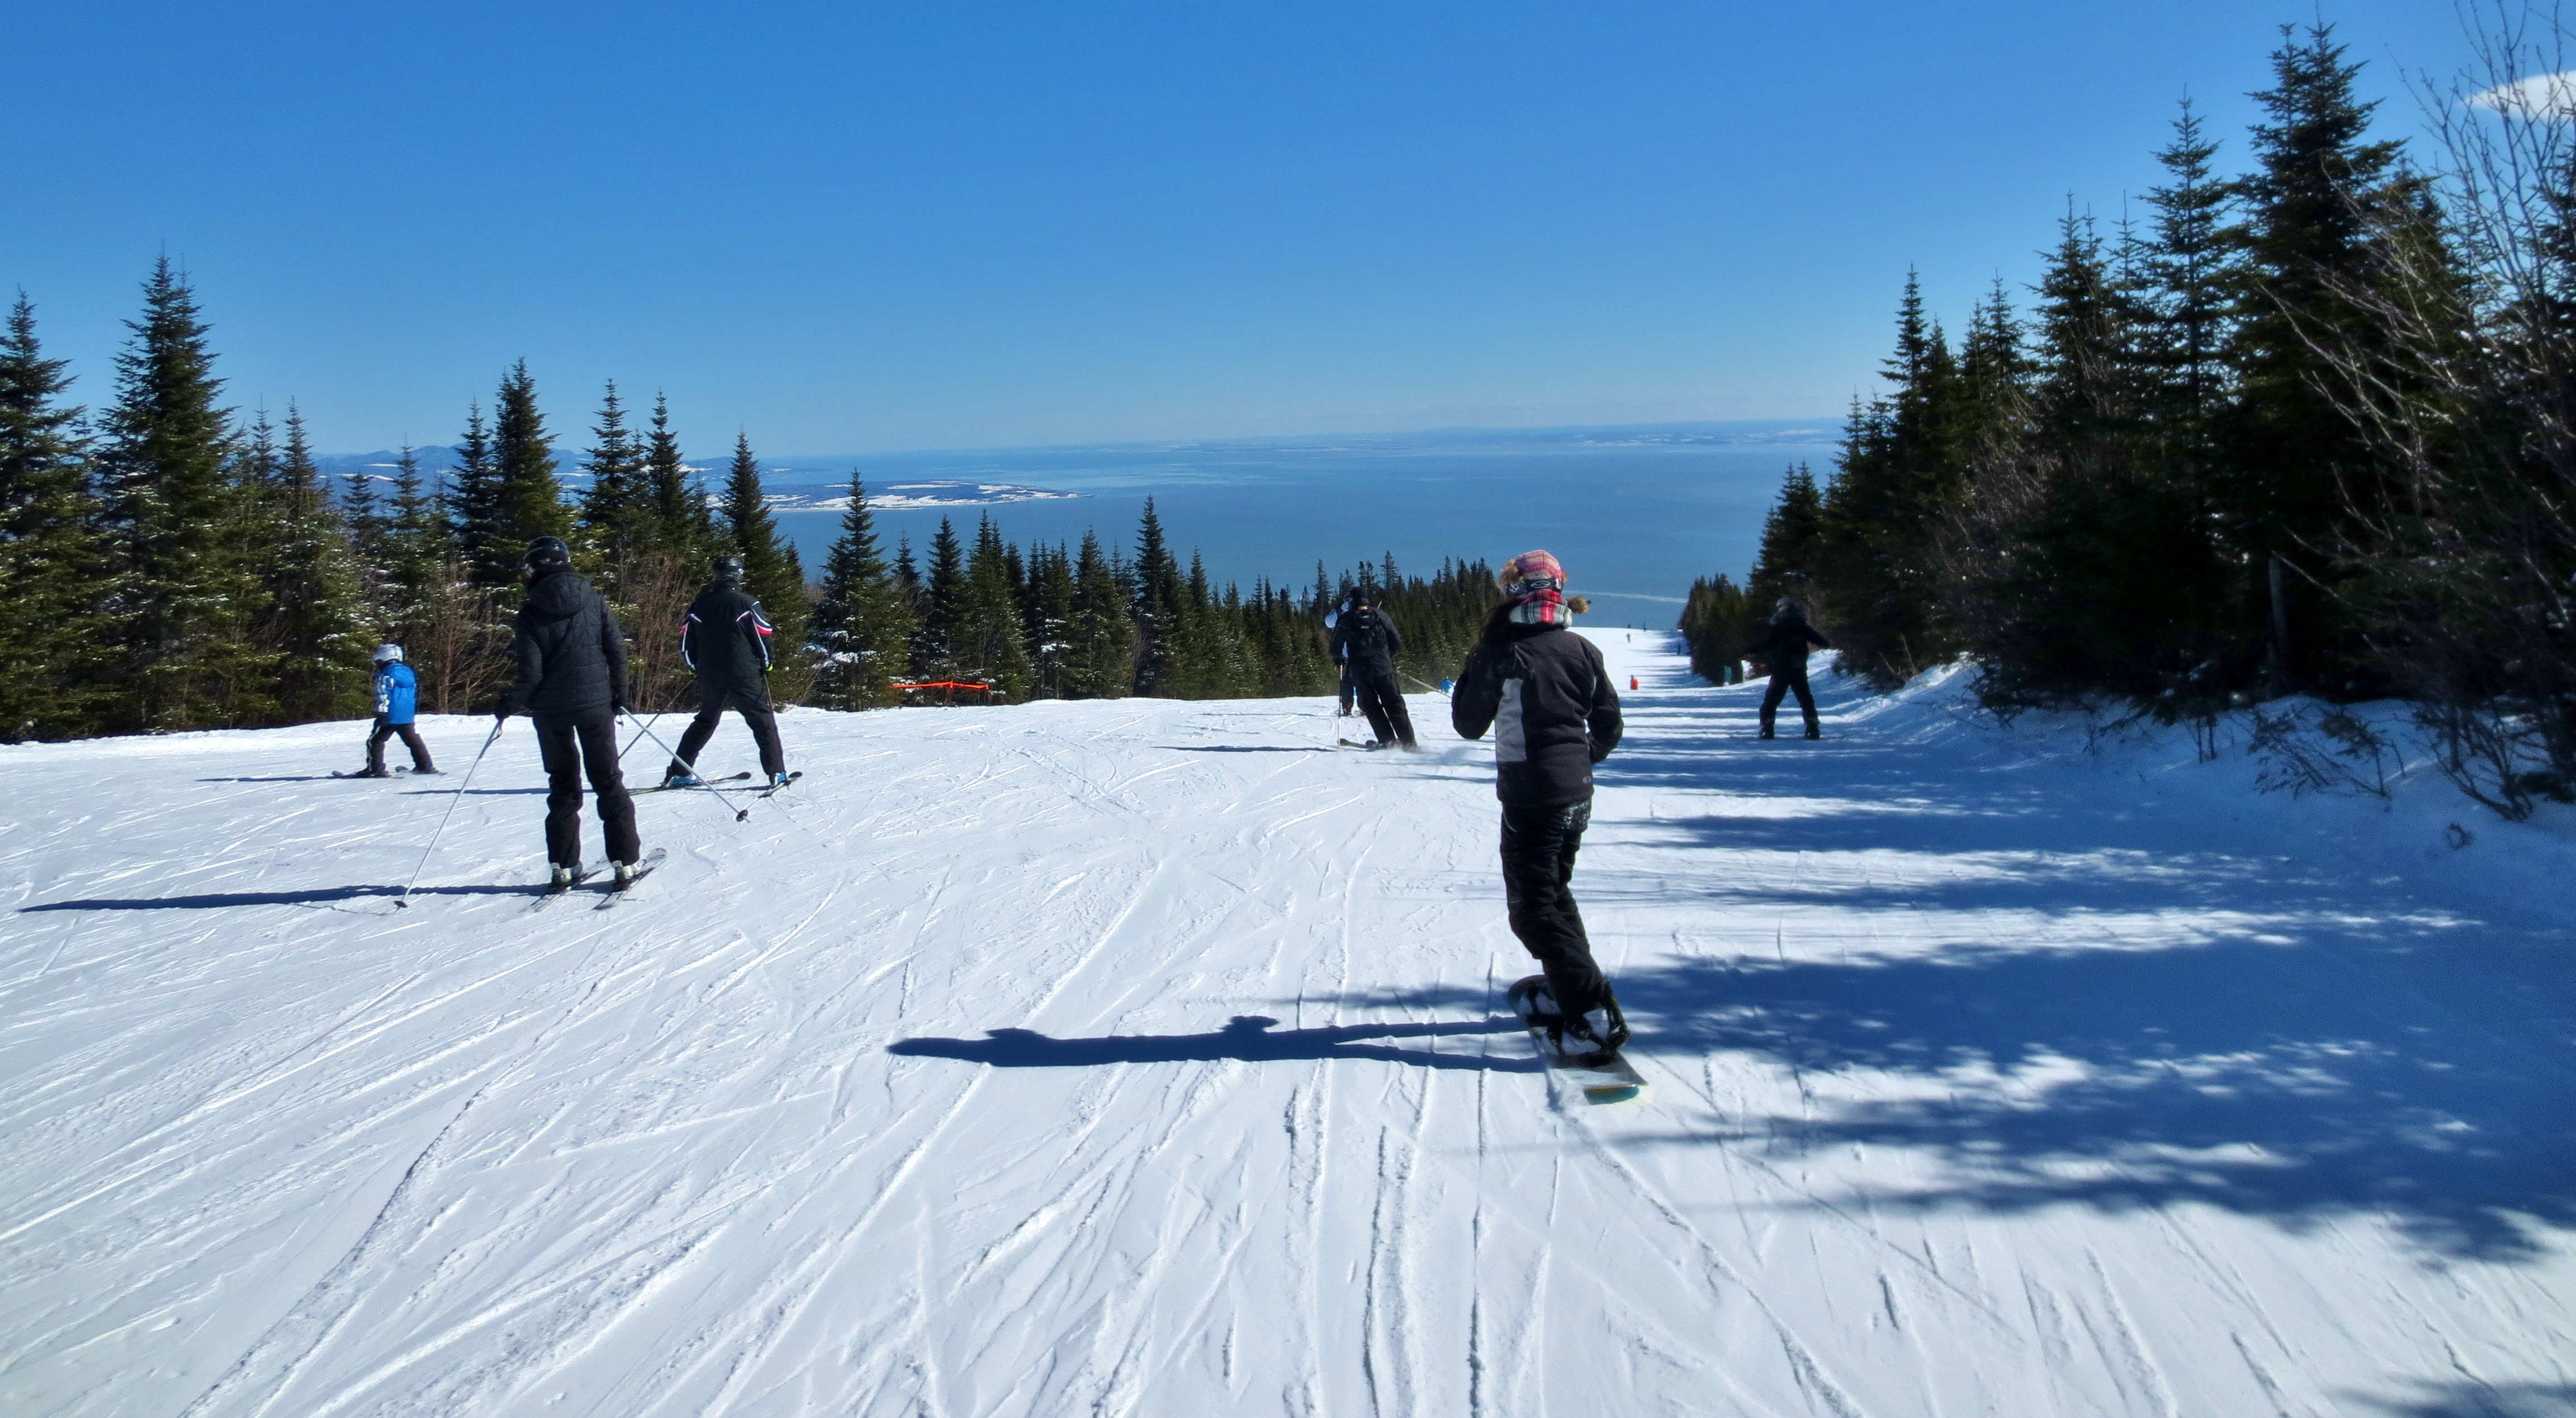 quebec city skiing: where the river narrows at le massif – wake and